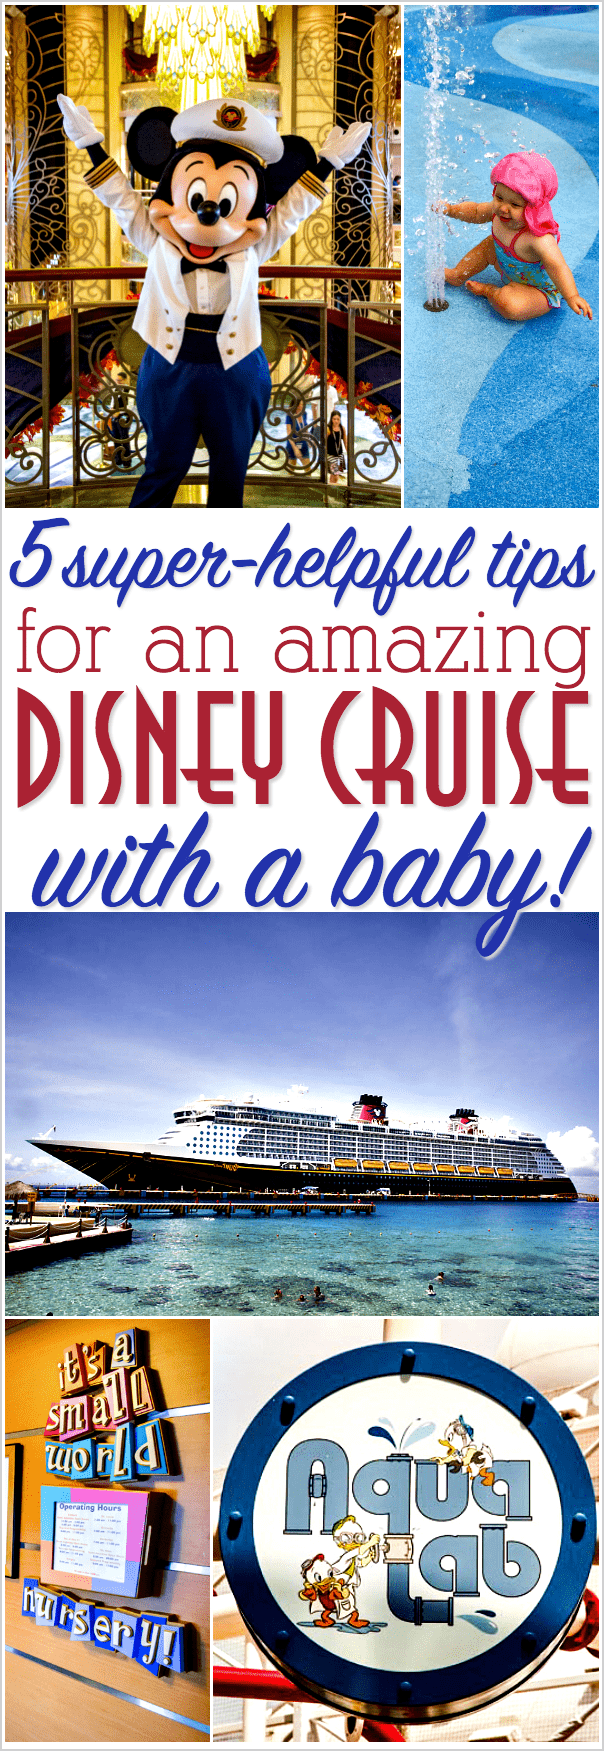 disney cruise with a baby tips